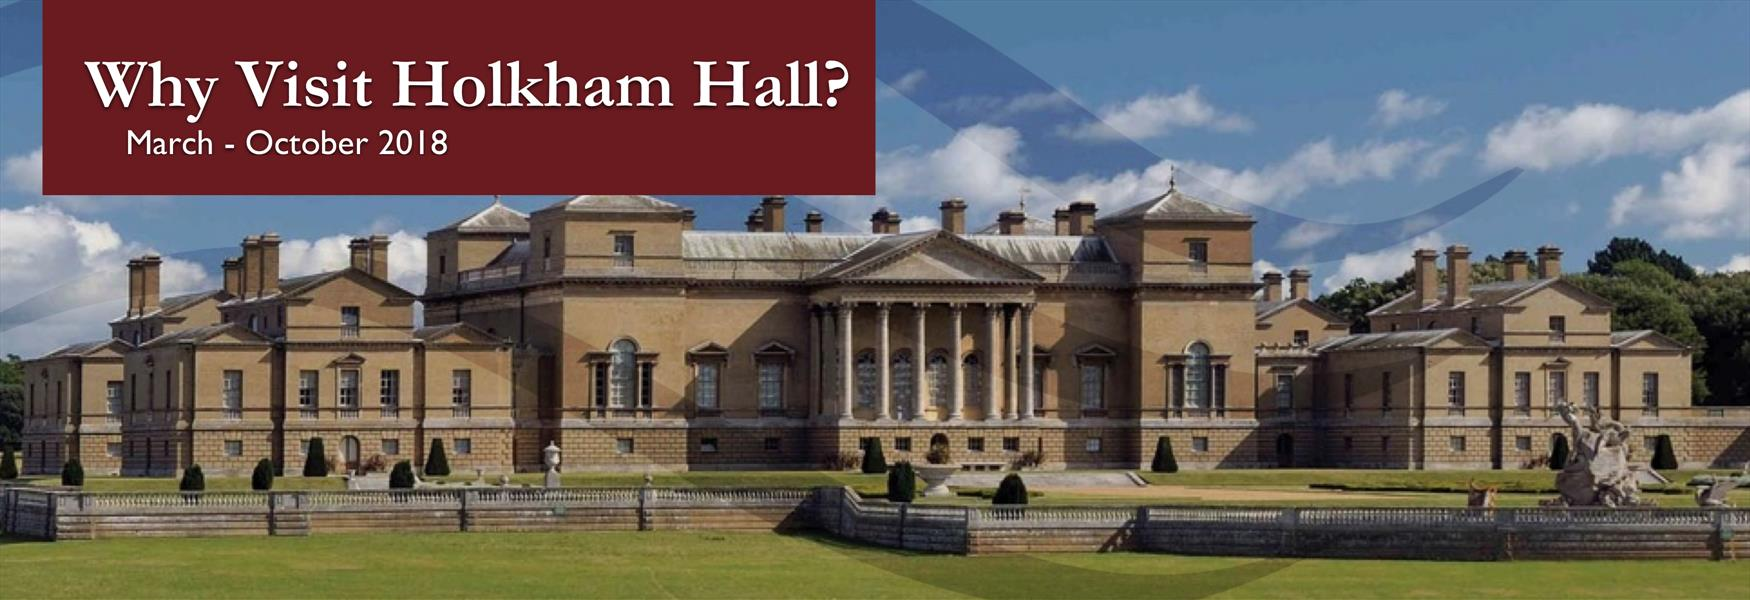 Why Visit Holkham Hall?